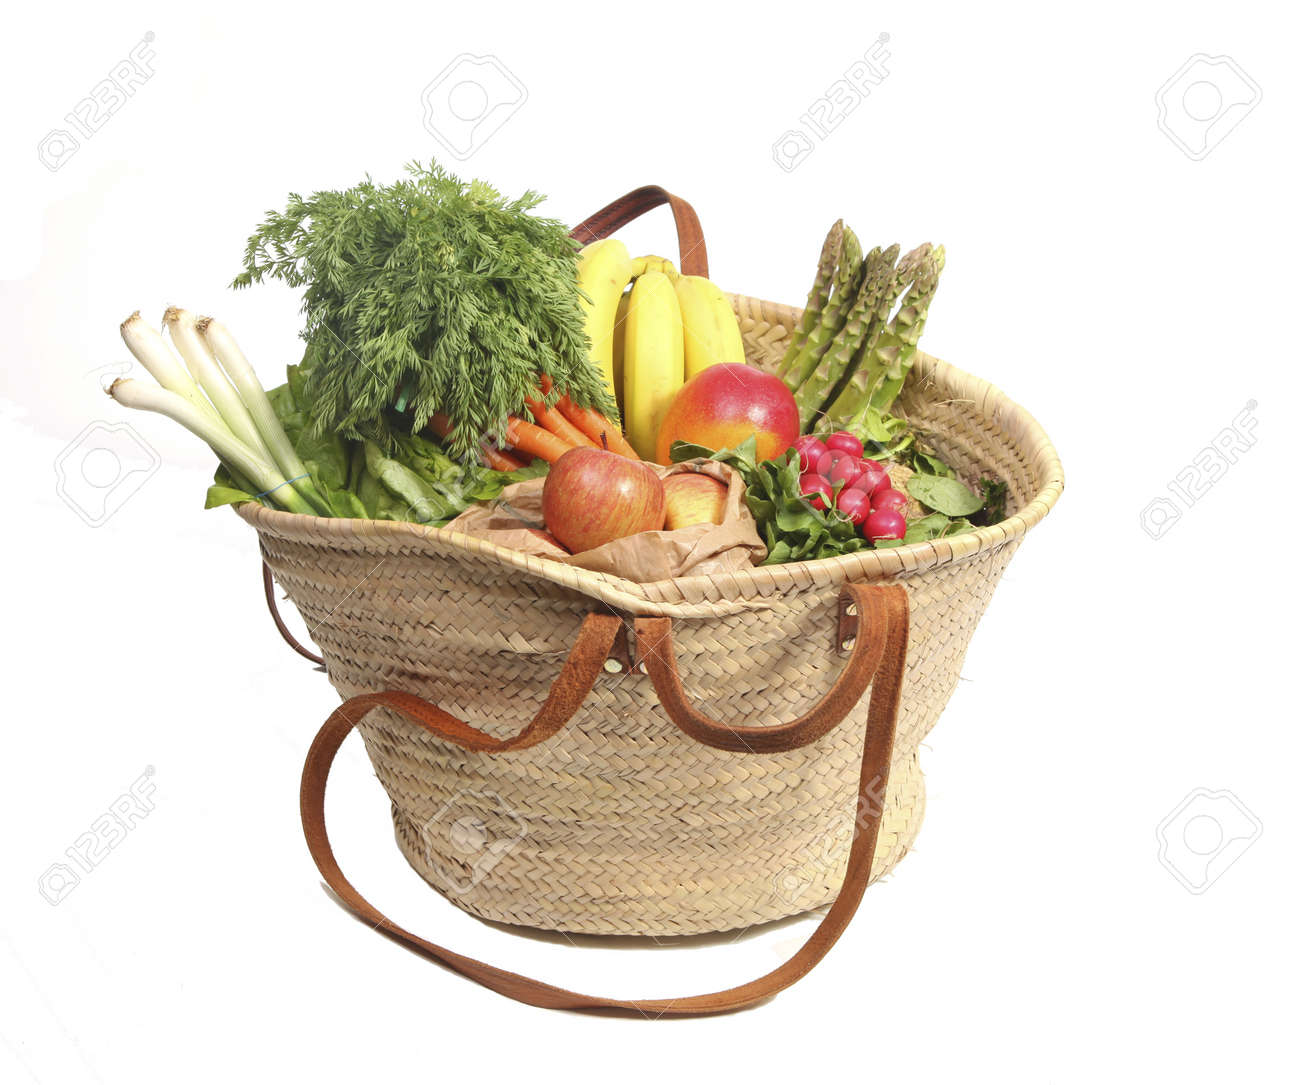 Eco friendly shopping bag with organic fruit and vegetables Stock Photo - 9216460